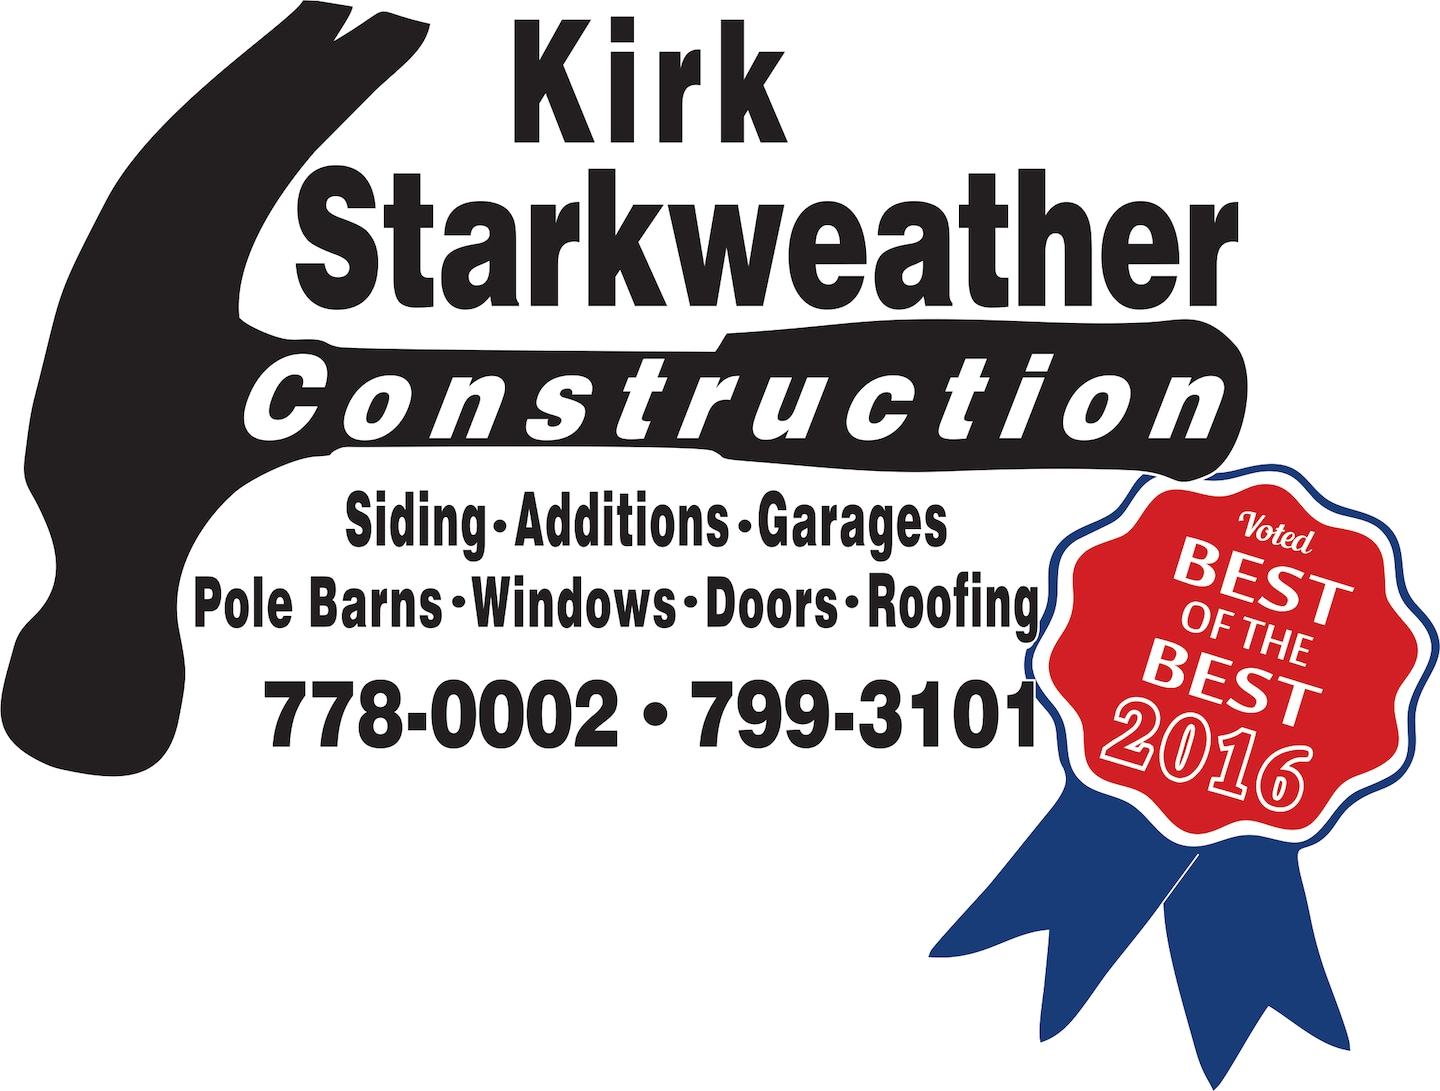 Kirk Starkweather Construction